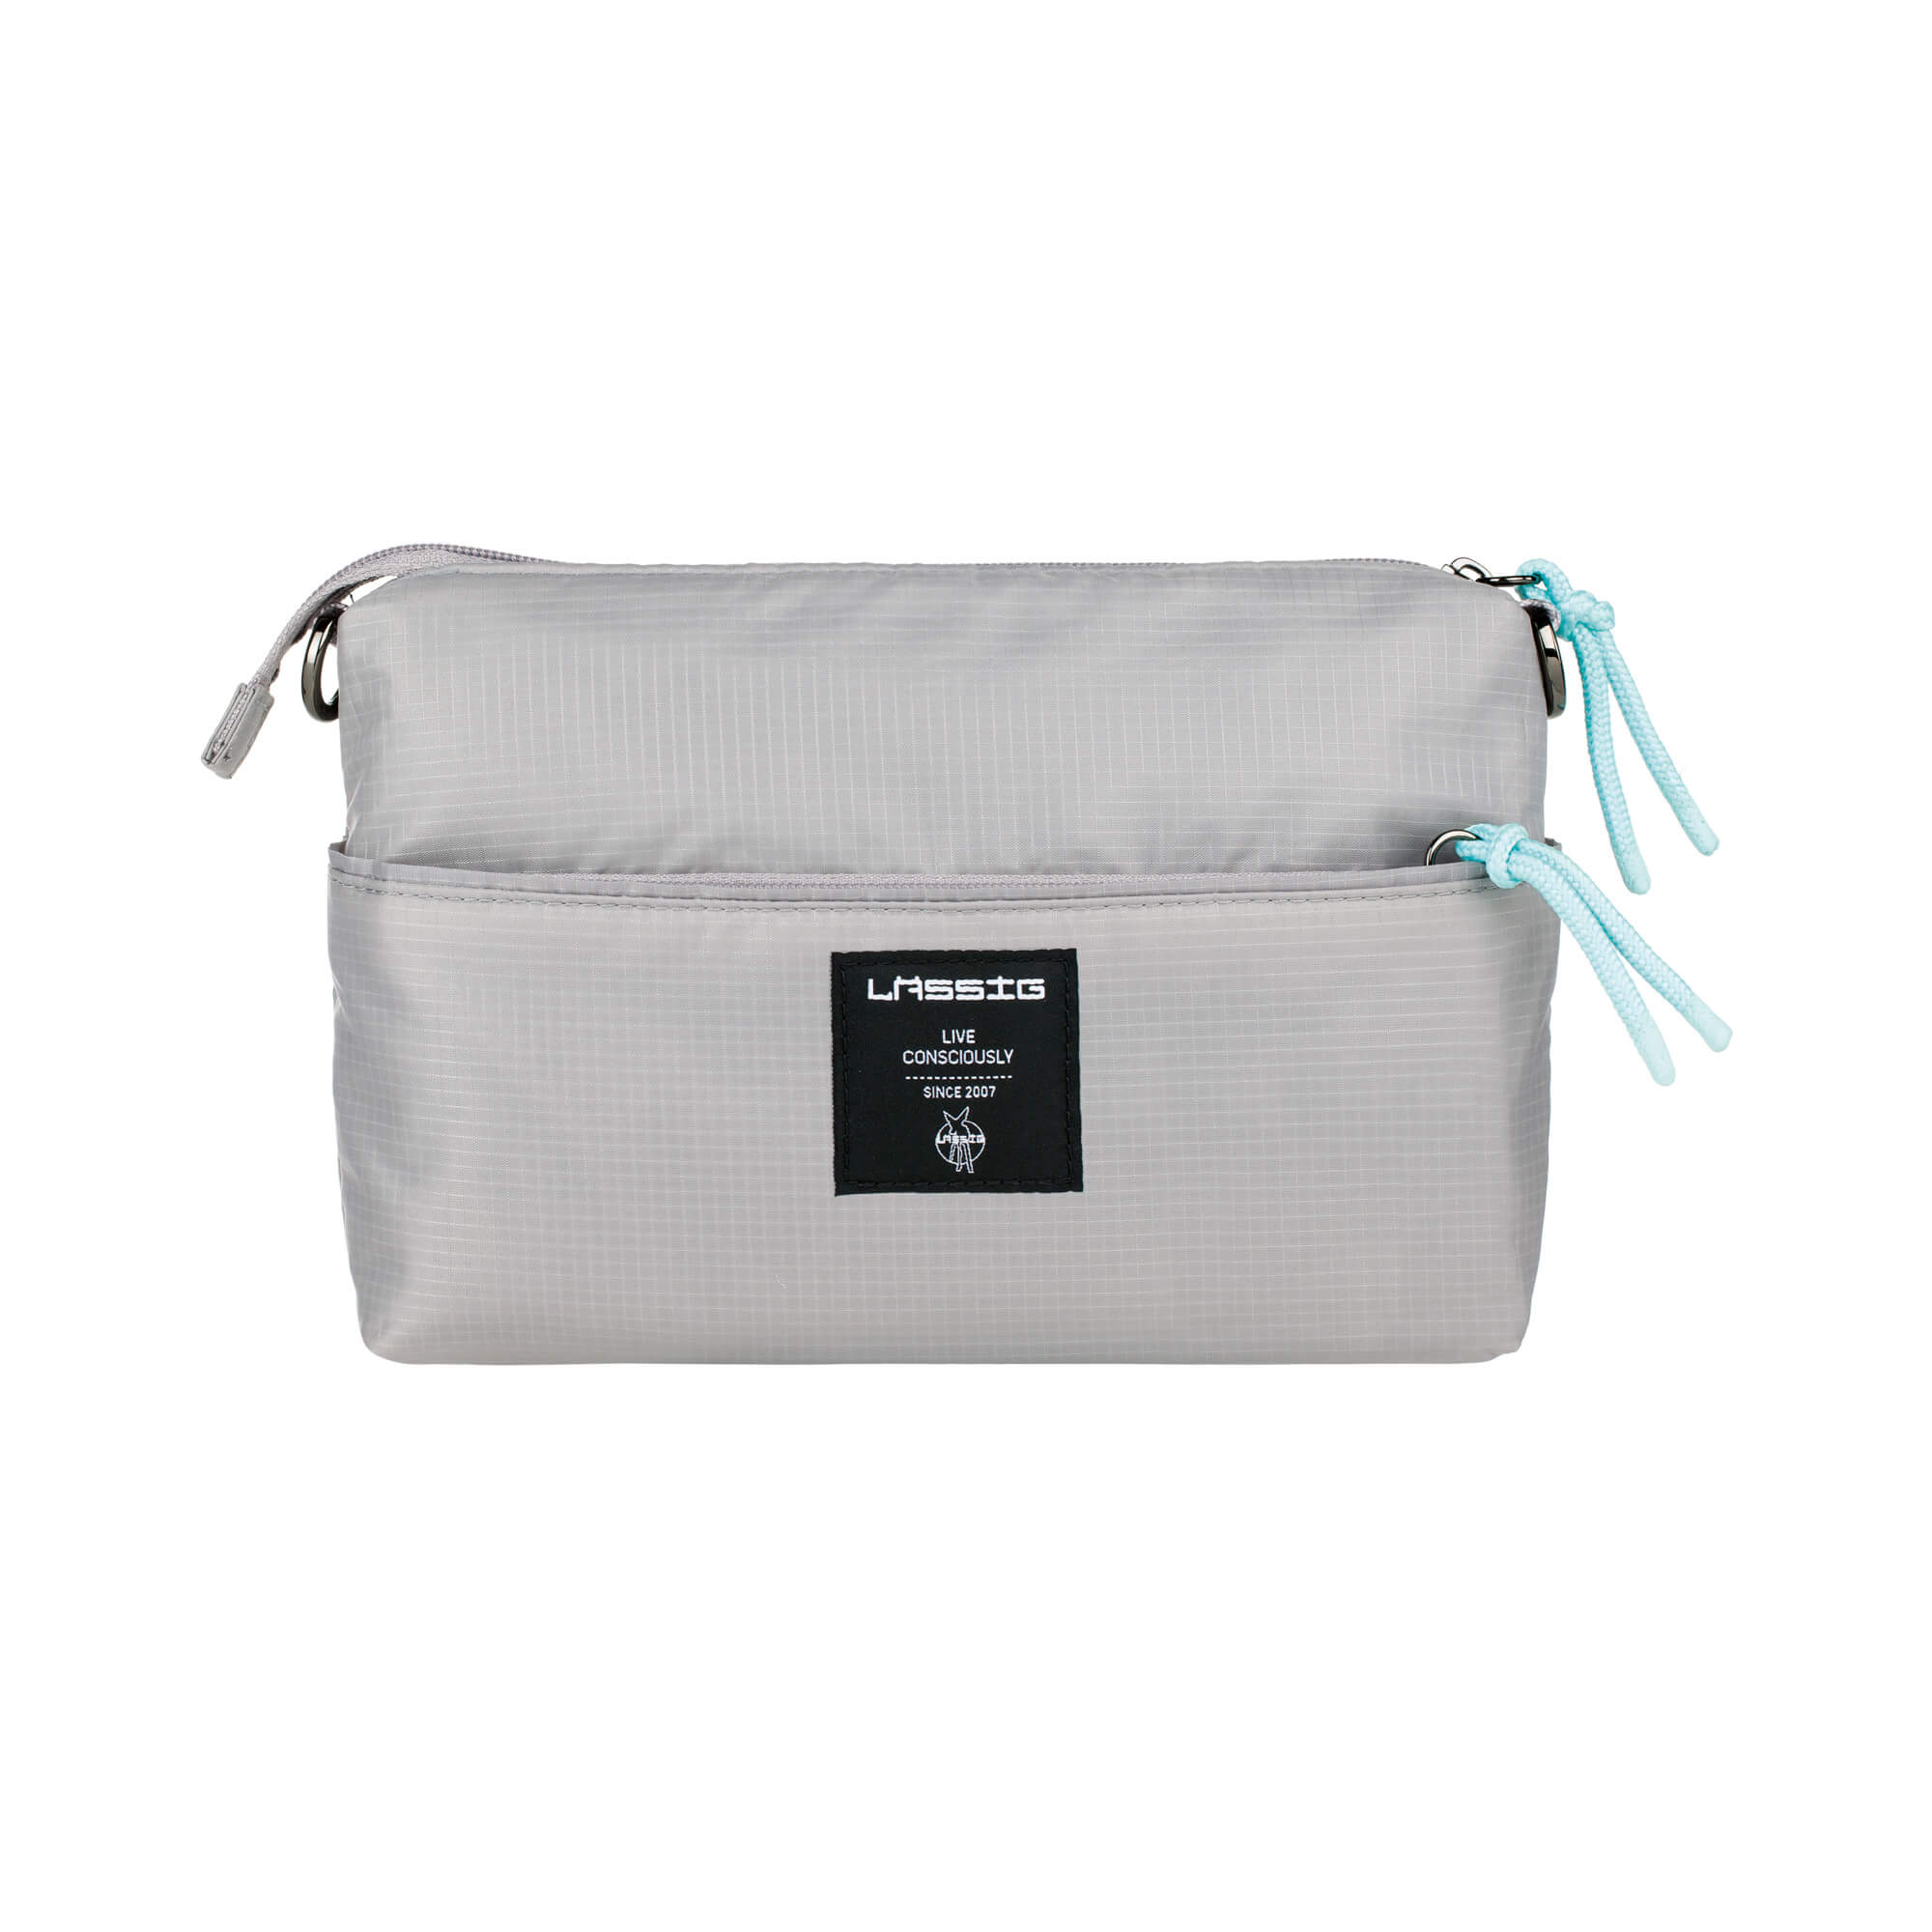 Windeltasche - Handtasche - Green Label Pouch POP - Grey - Lässig